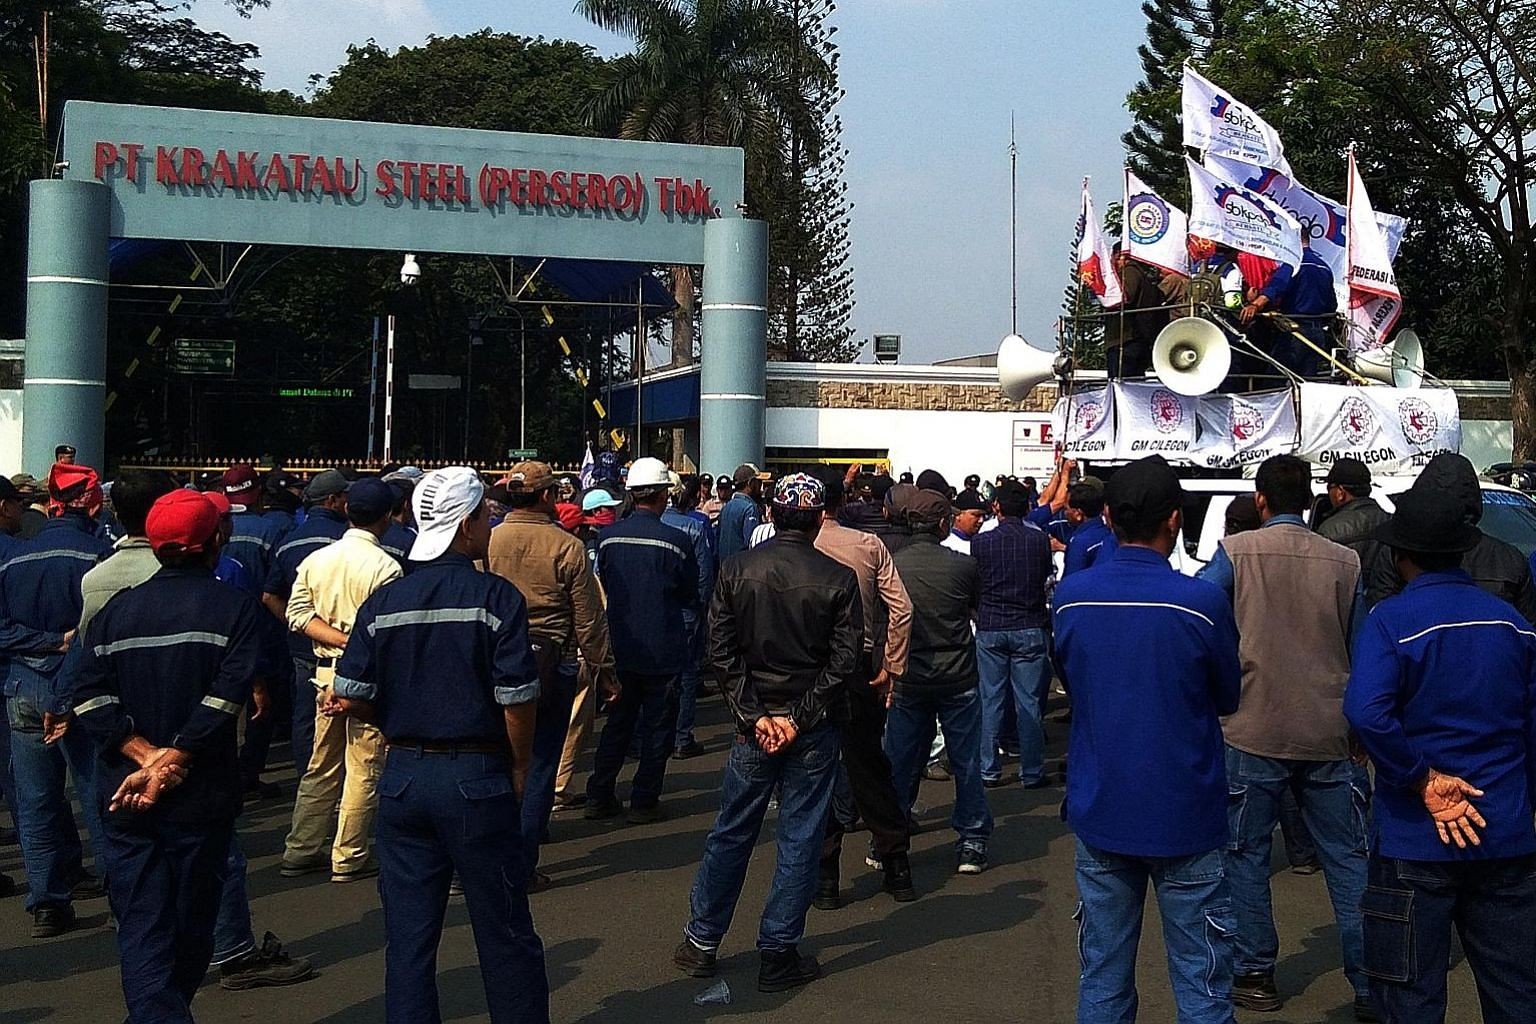 Krakatau Steel workers protesting last week outside their plant in Cilegon, Indonesia, against the company's plans for a 30 per cent cut in the workforce. PHOTO: REUTERS